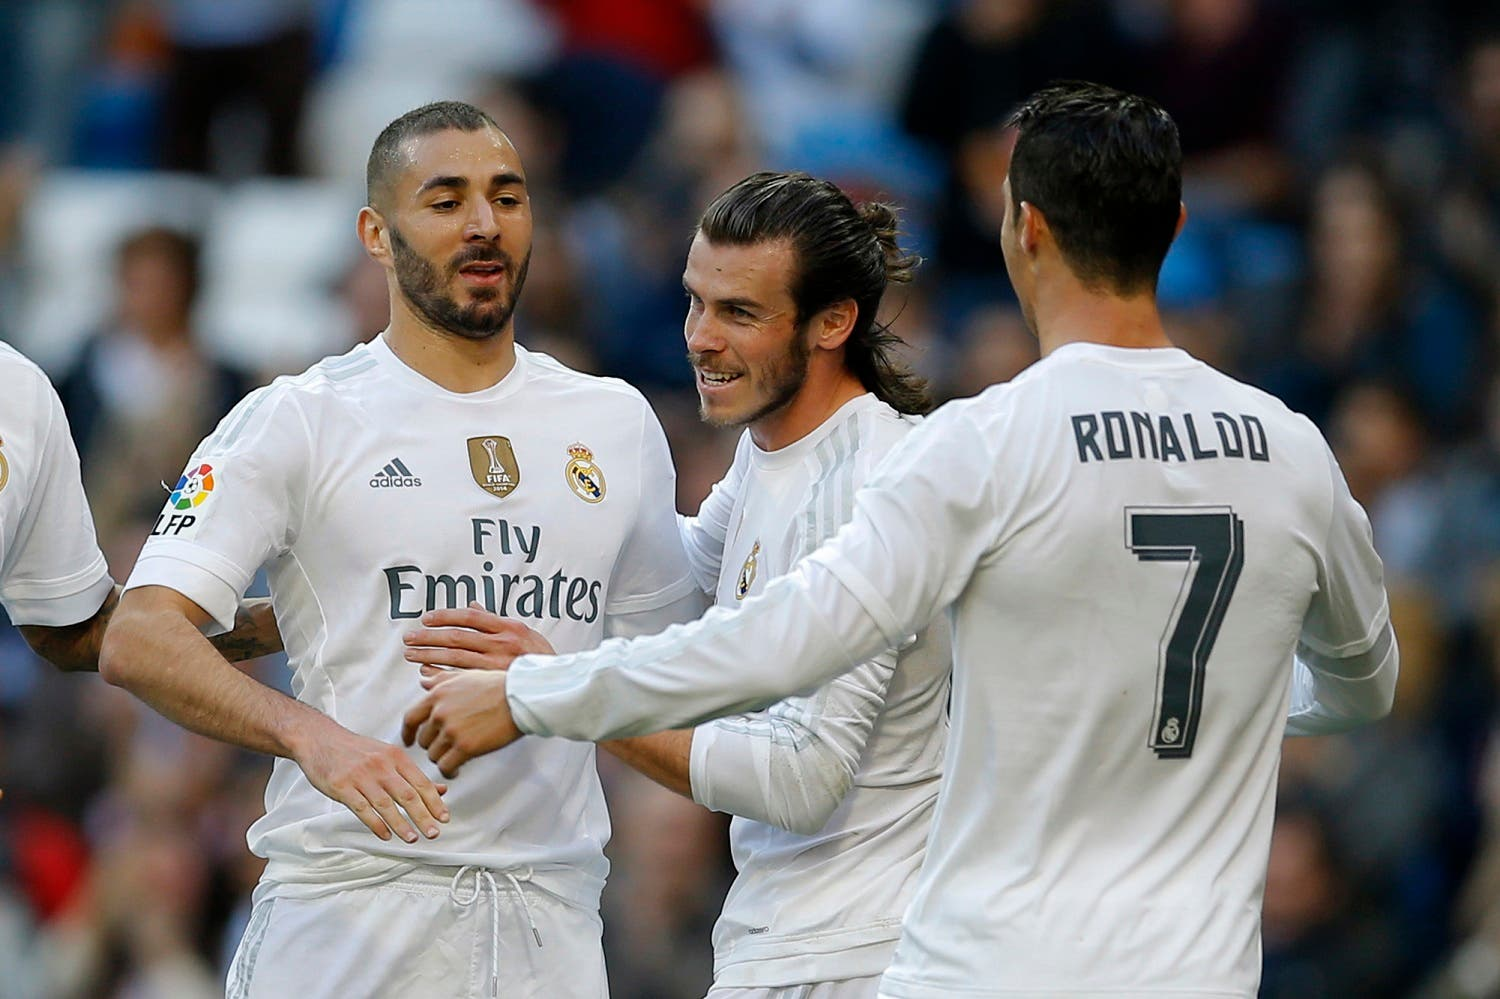 Real Madrid's Karim Benzema, left, celebrates with teammates Cristiano Ronaldo, right, and Gareth Bale after scoring their side's third goal against Getafe during the Spanish La Liga soccer match between Real Madrid and Getafe at the Santiago Bernabeu stadium in Madrid, Saturday, Dec. 5, 2015. Benzema scored twice and Ronaldo and Bale scored once each in Real Madrid's 4-1 victory. (AP)